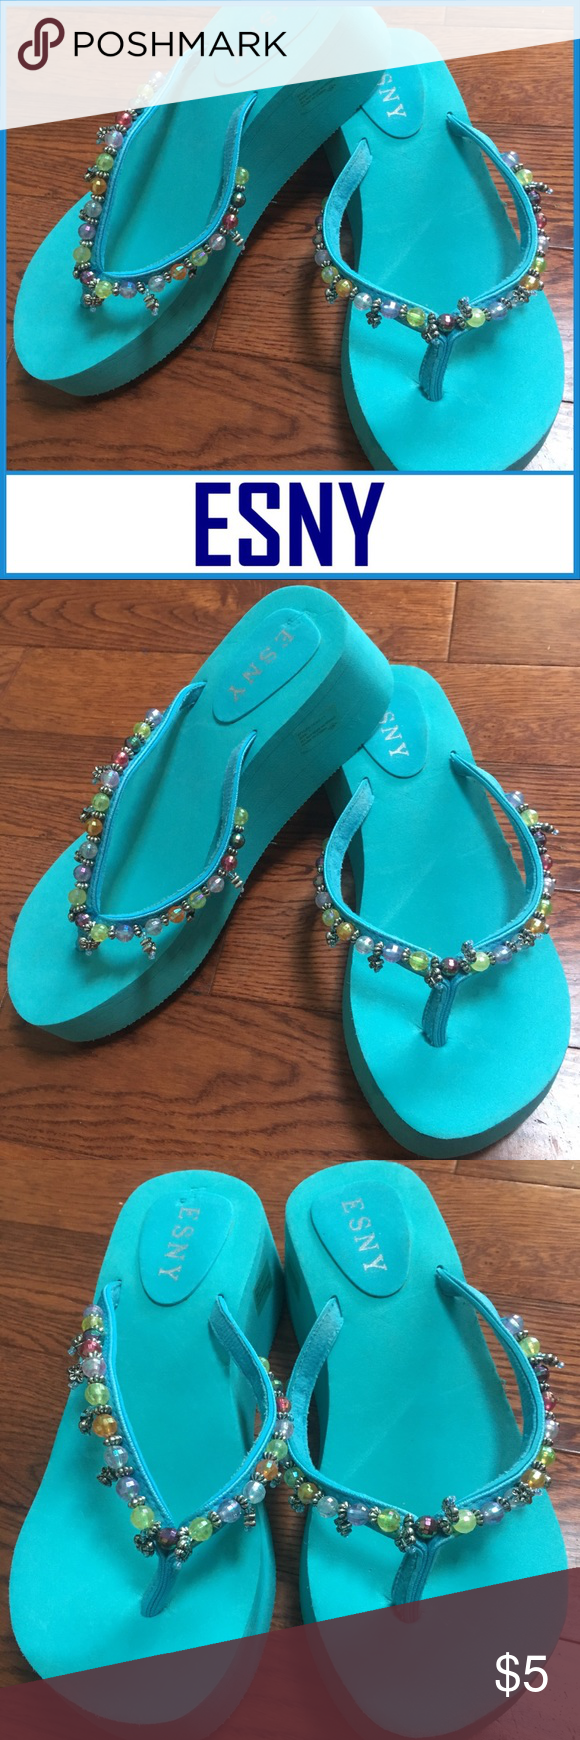 b31db8ed6ba15 ESNY Women s Aqua Beaded Flip Flops Size 7US ESNY Women s Aqua Beaded Flip  Flops Size 7US ▫️Never worn but a few brown markings on soles.